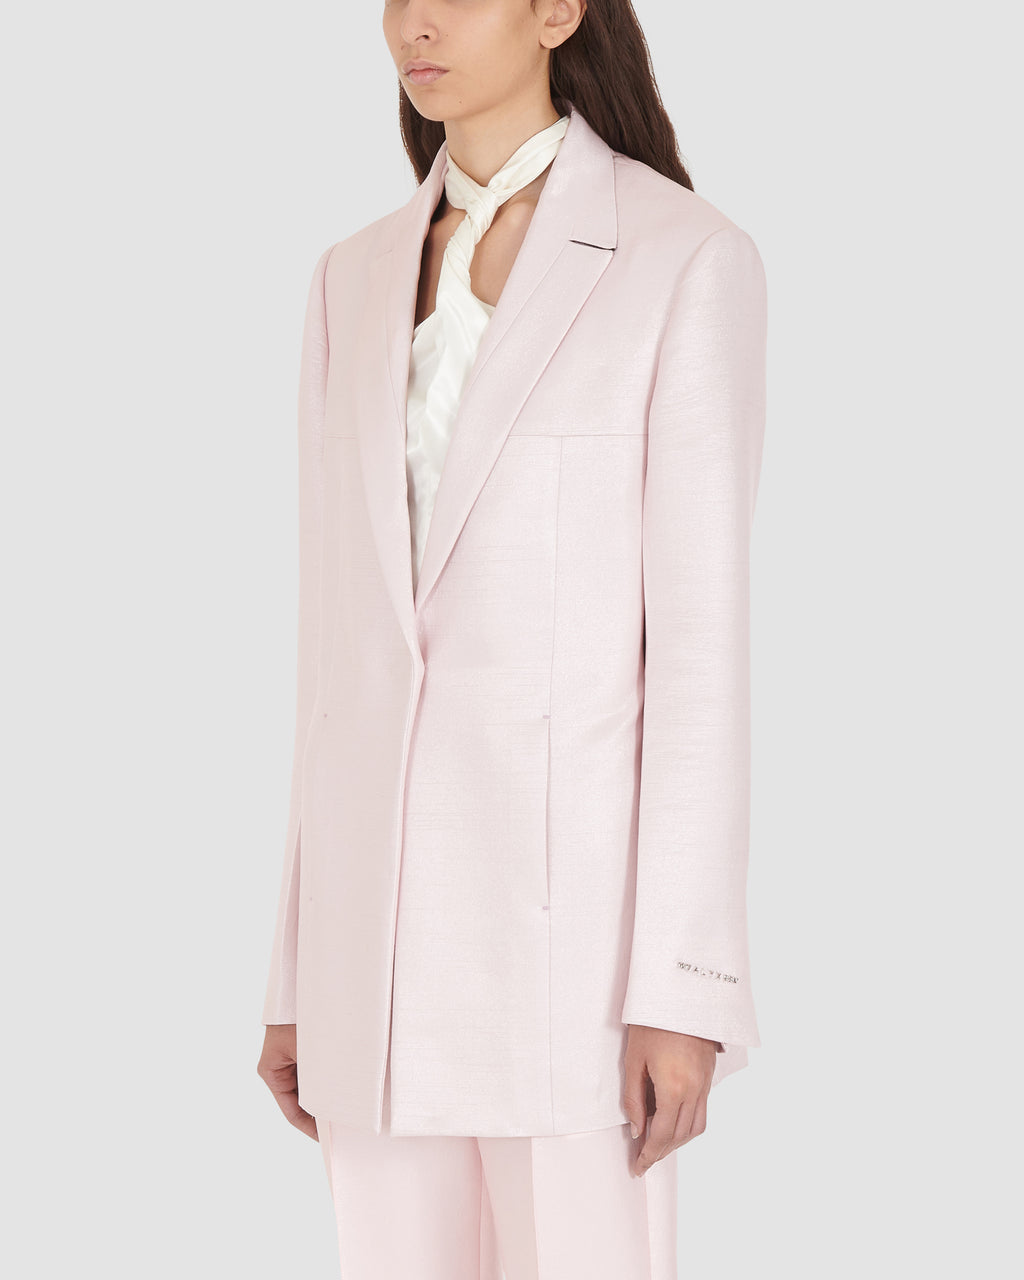 1 BUTTON TAILORING COAT